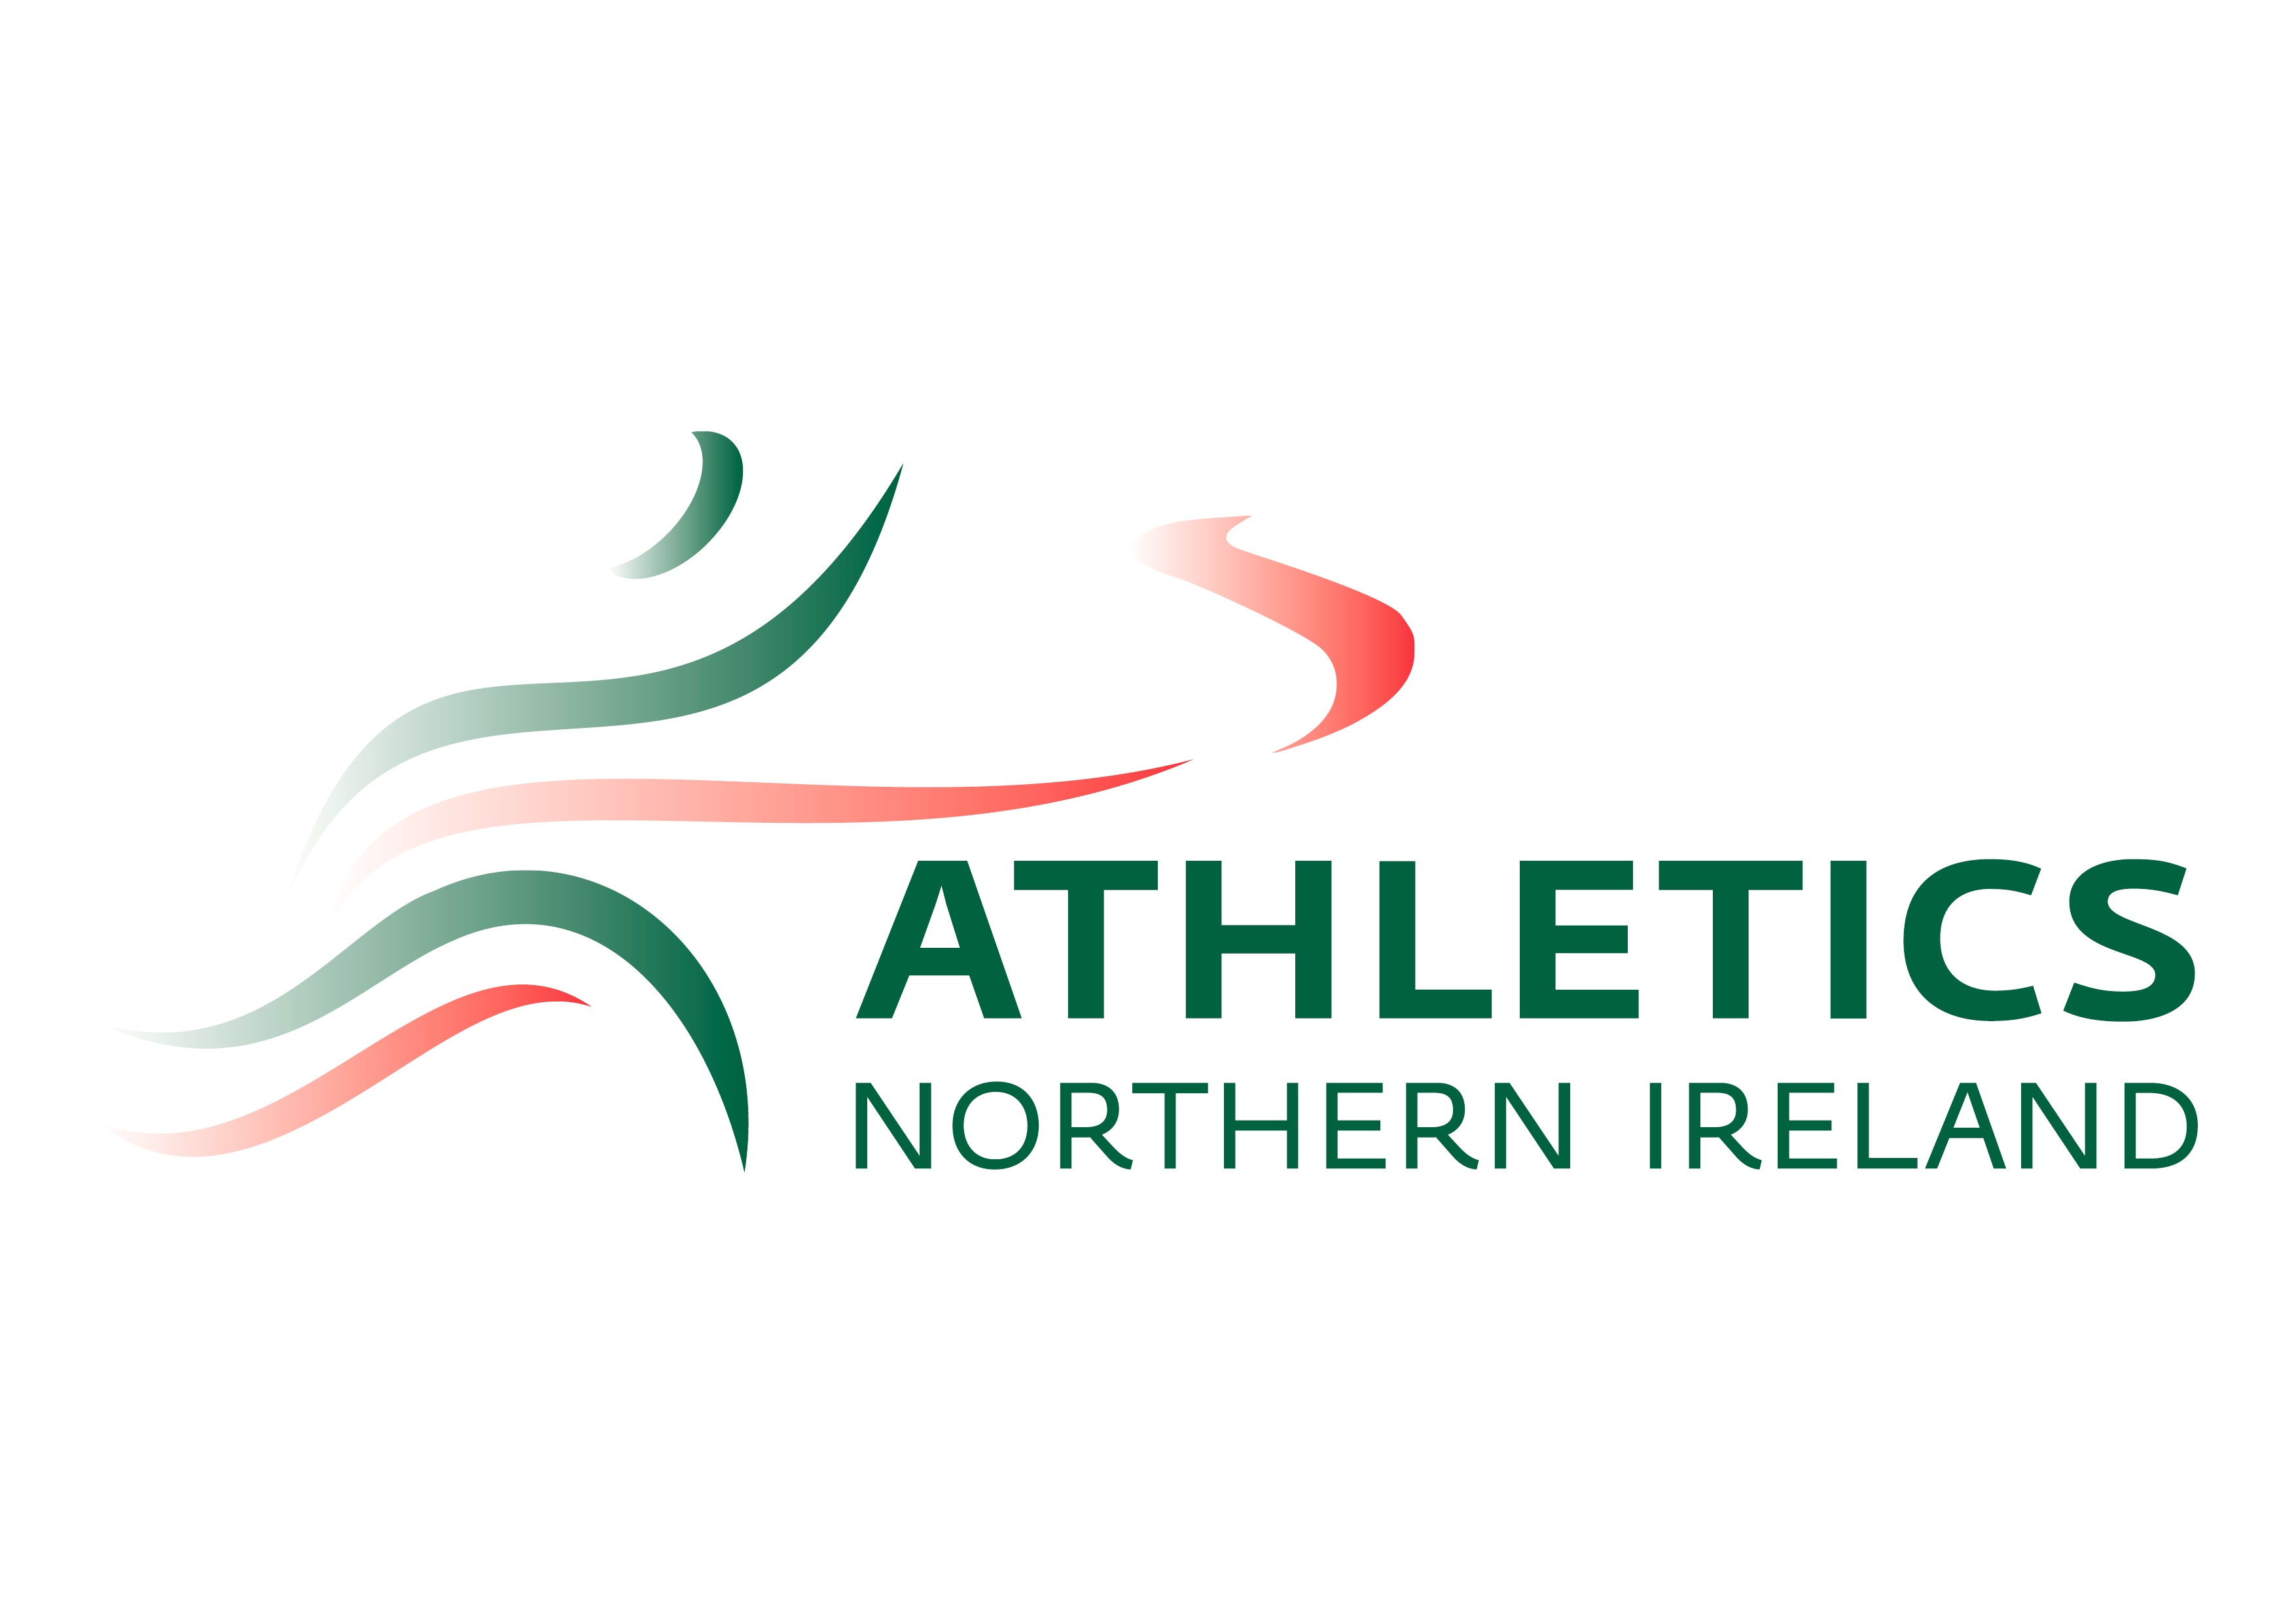 Request for Proposals for Medical Provider for Athletics Northern Ireland Events